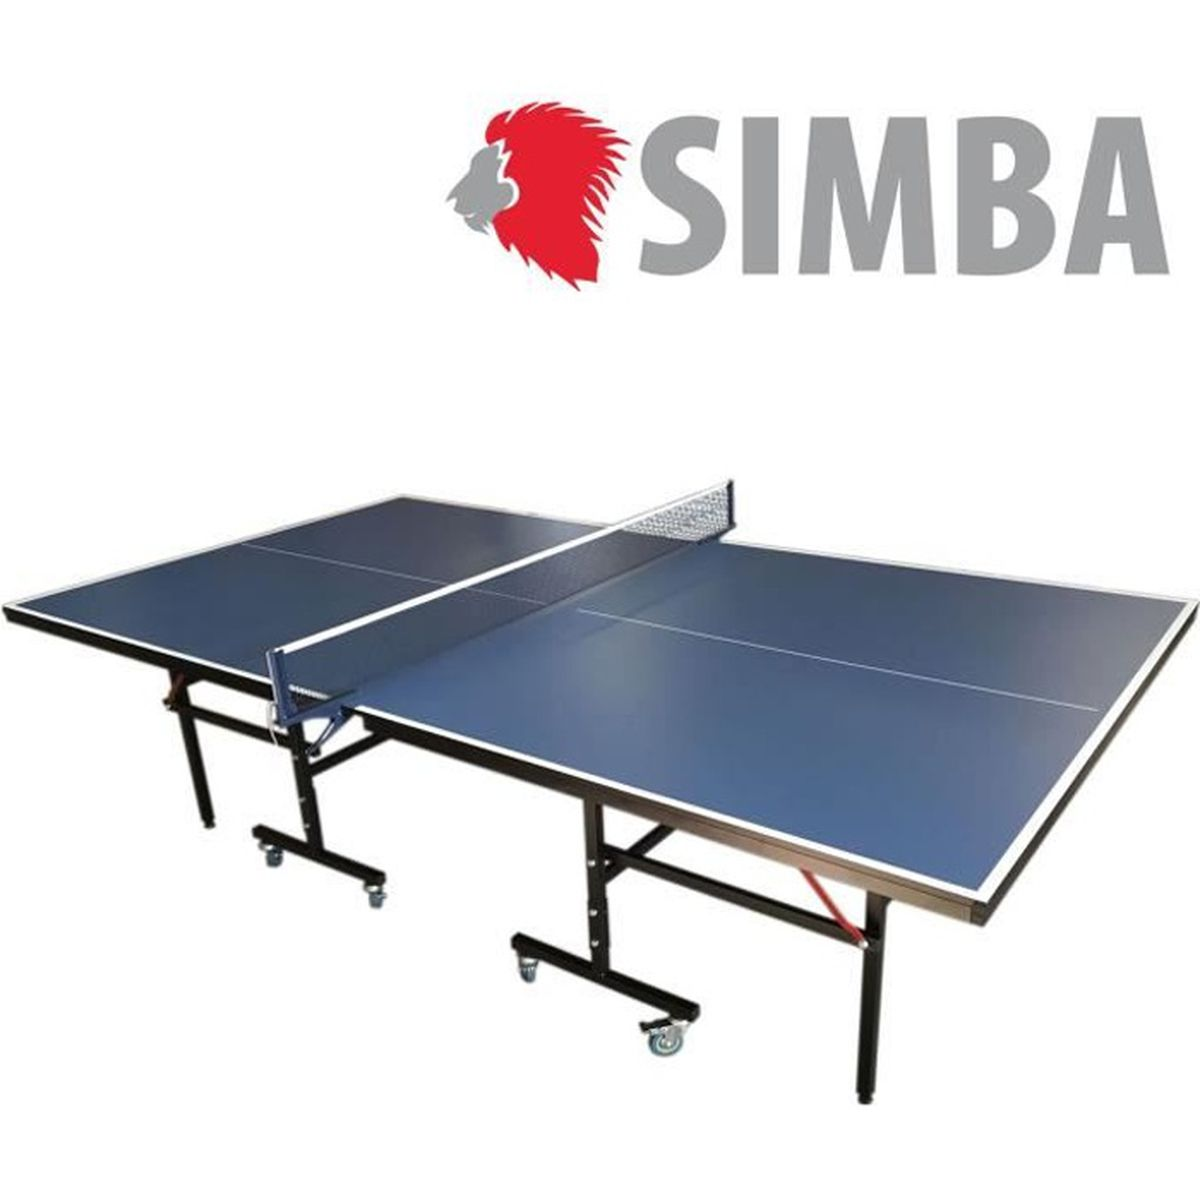 Table tennis de table achat vente table tennis de table pas cher cdiscount - Achat table ping pong ...